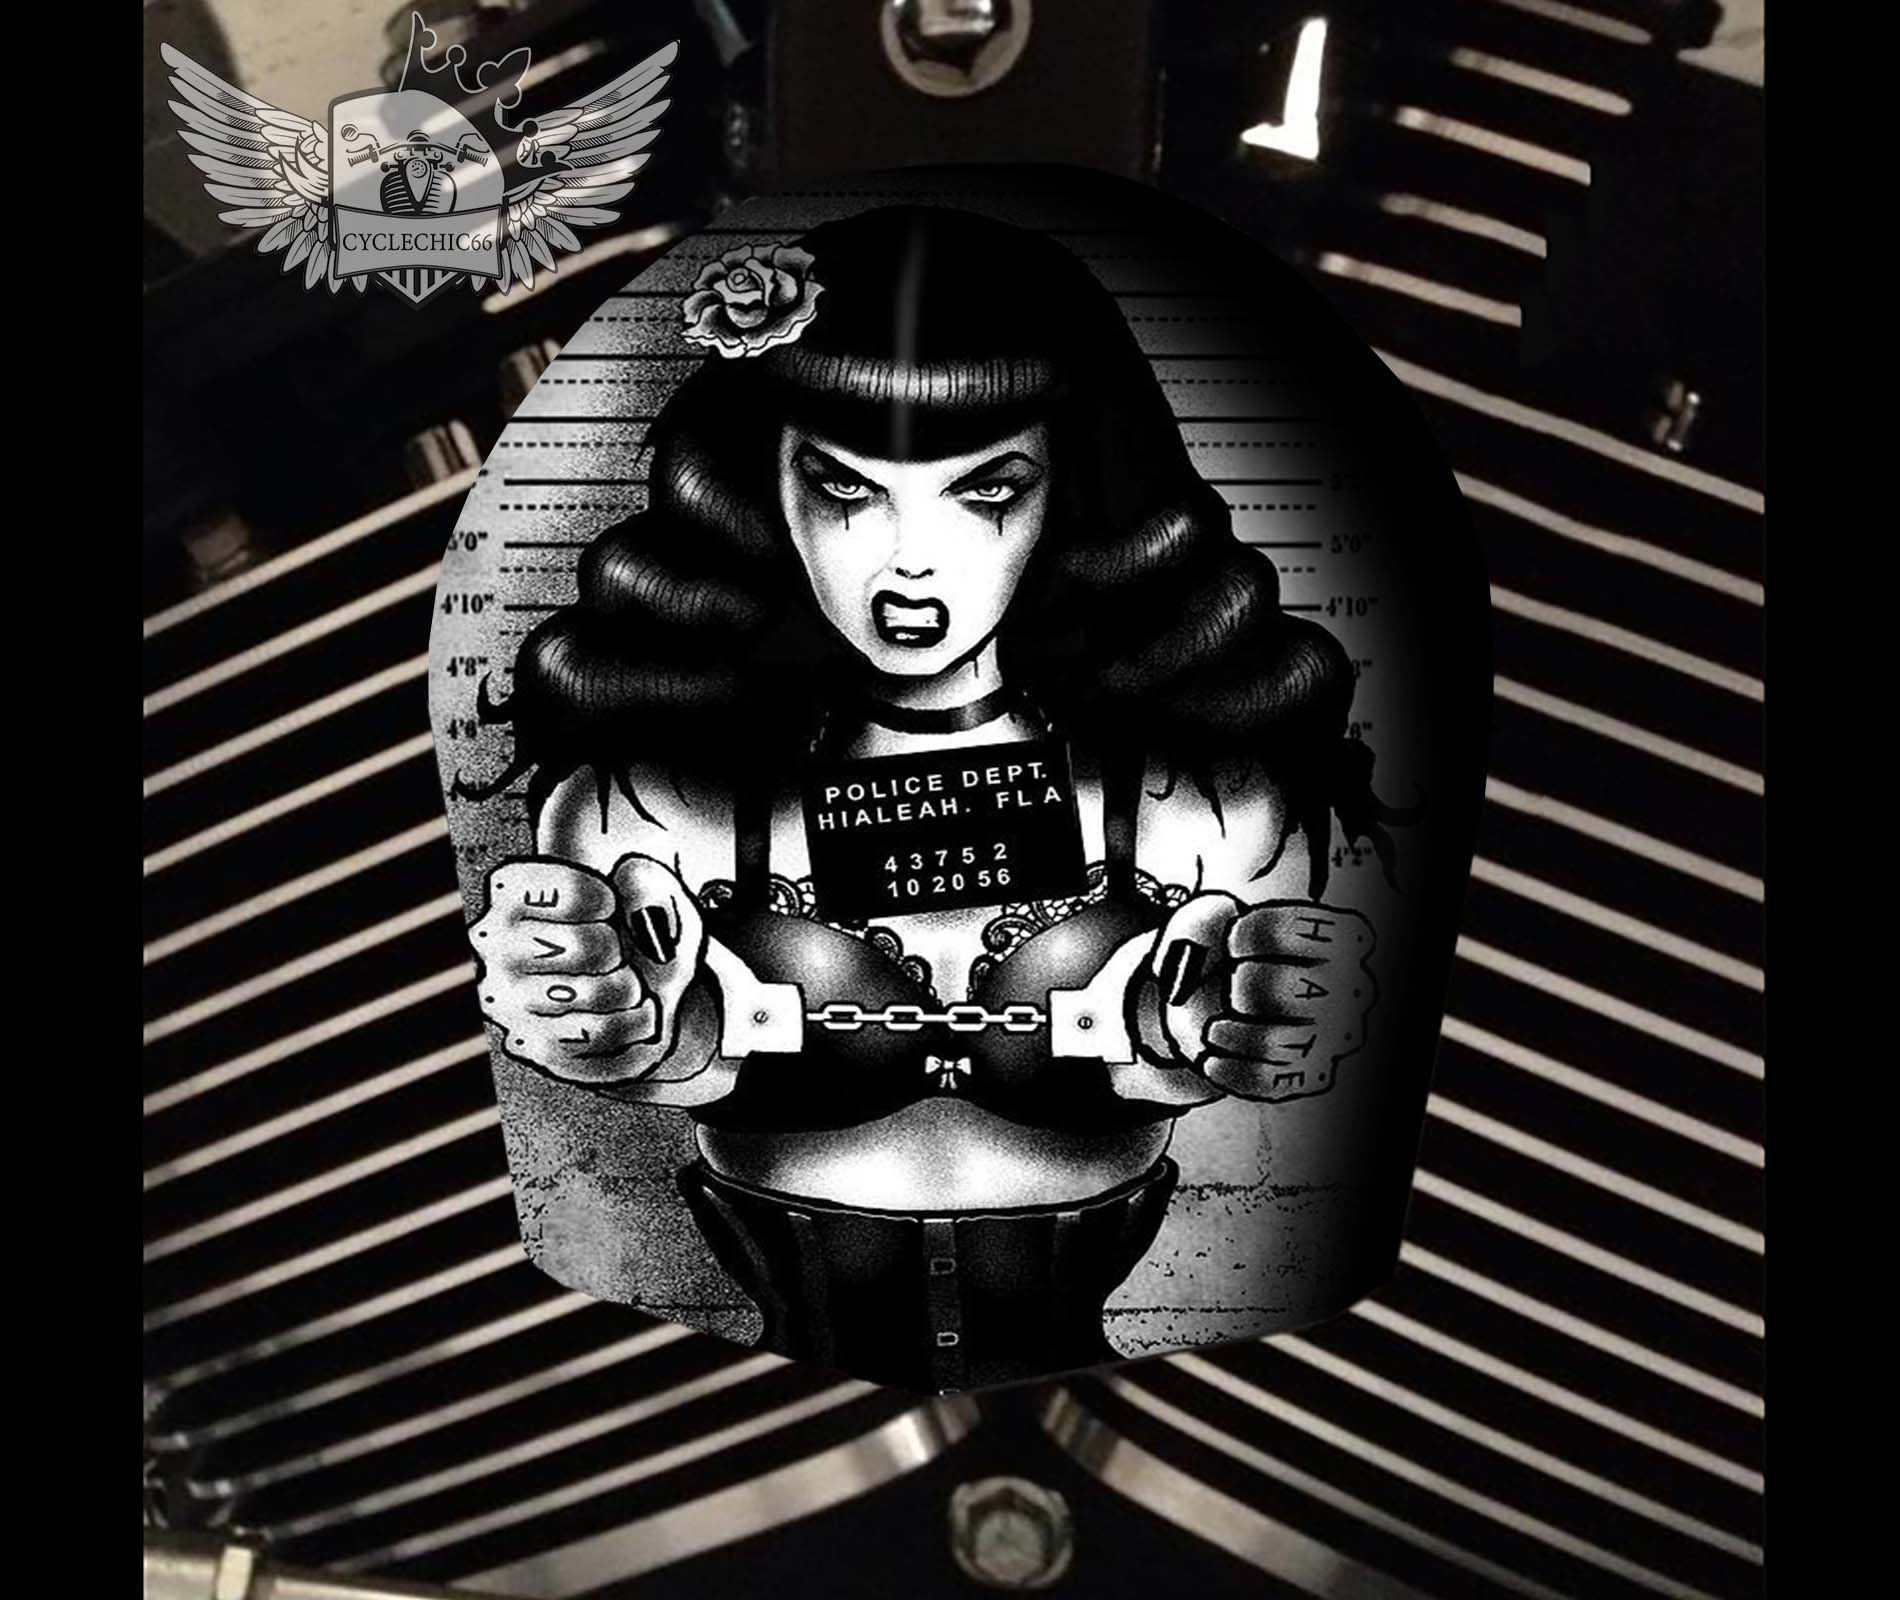 Harley Davidson Horn Cover - Betty Page Prison